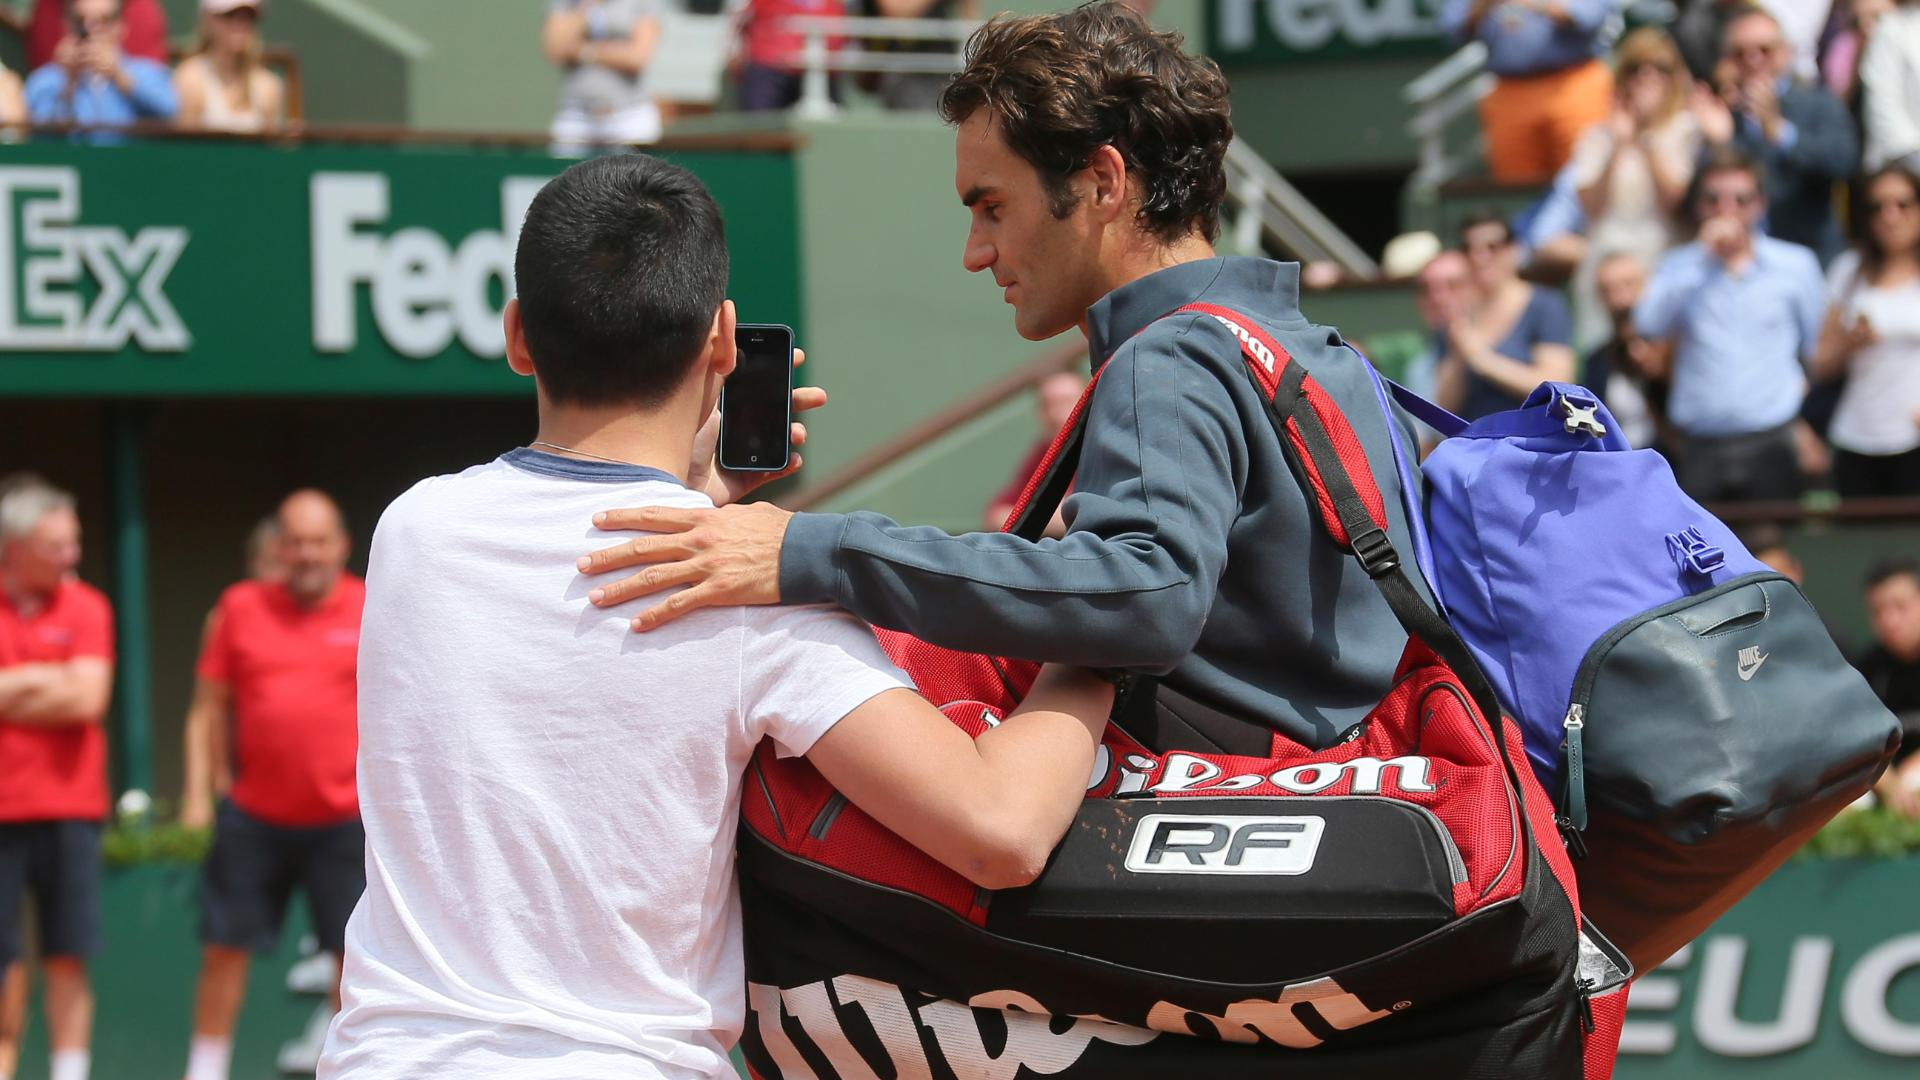 Roger Federer upset after being approached on court by selfie seeker